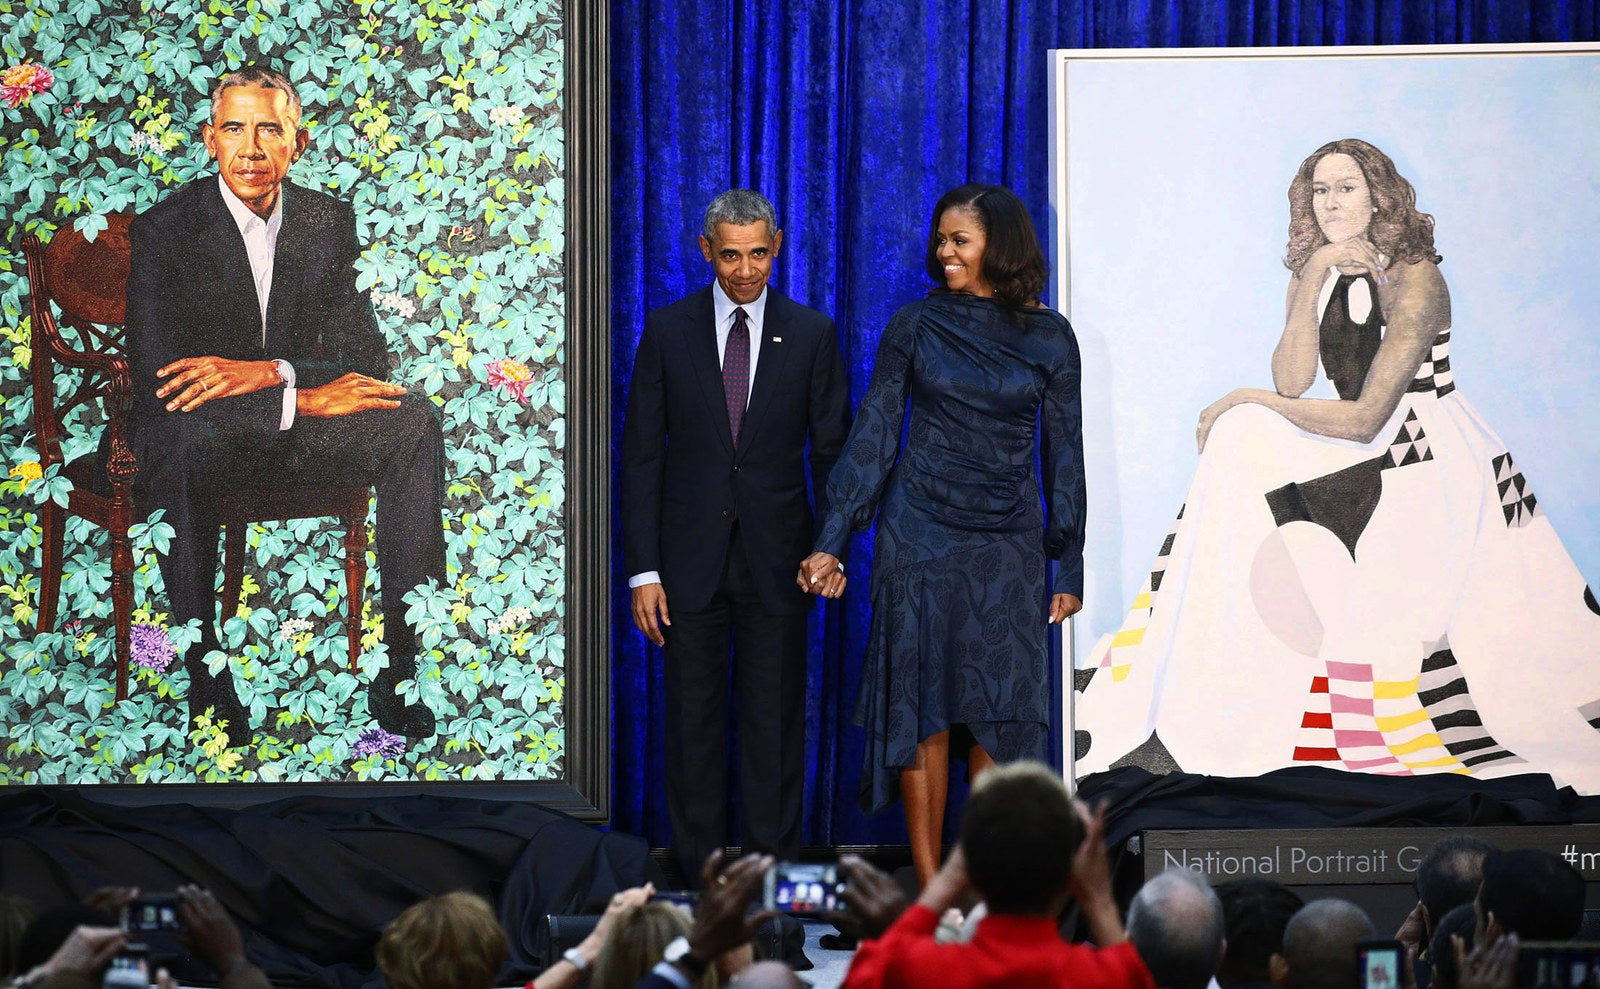 Former US president Barack Obama and former first lady Michelle Obama hold hands between their portraits during an unveiling ceremony at the Smithsonian's National Portrait Gallery in Washington, DC, on Feb. 12.